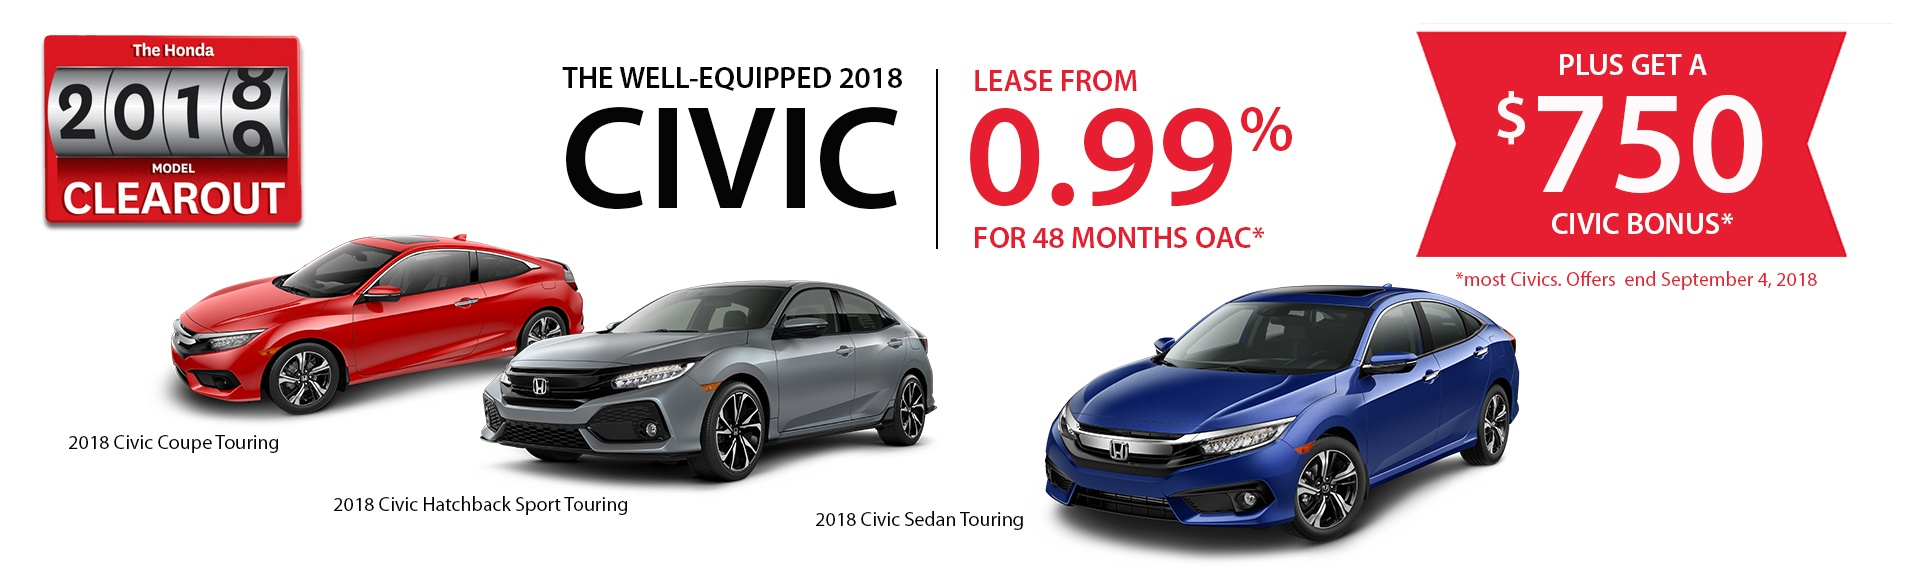 2018 Honda Civic Clearout